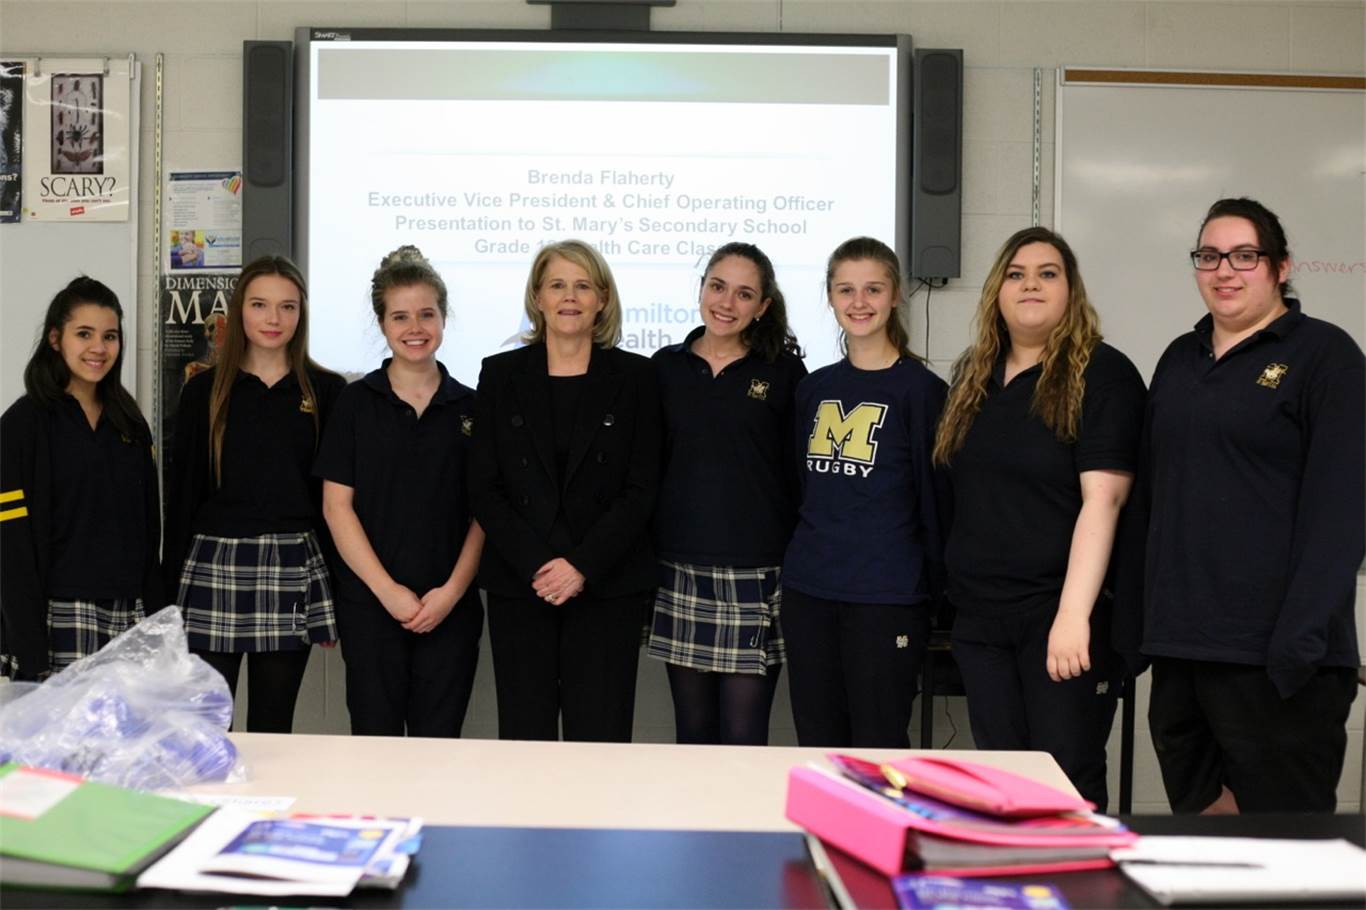 SHSM Health and Wellness Grade 12 Health care students with Brenda Flaherty. Photo by Nancy Castura.